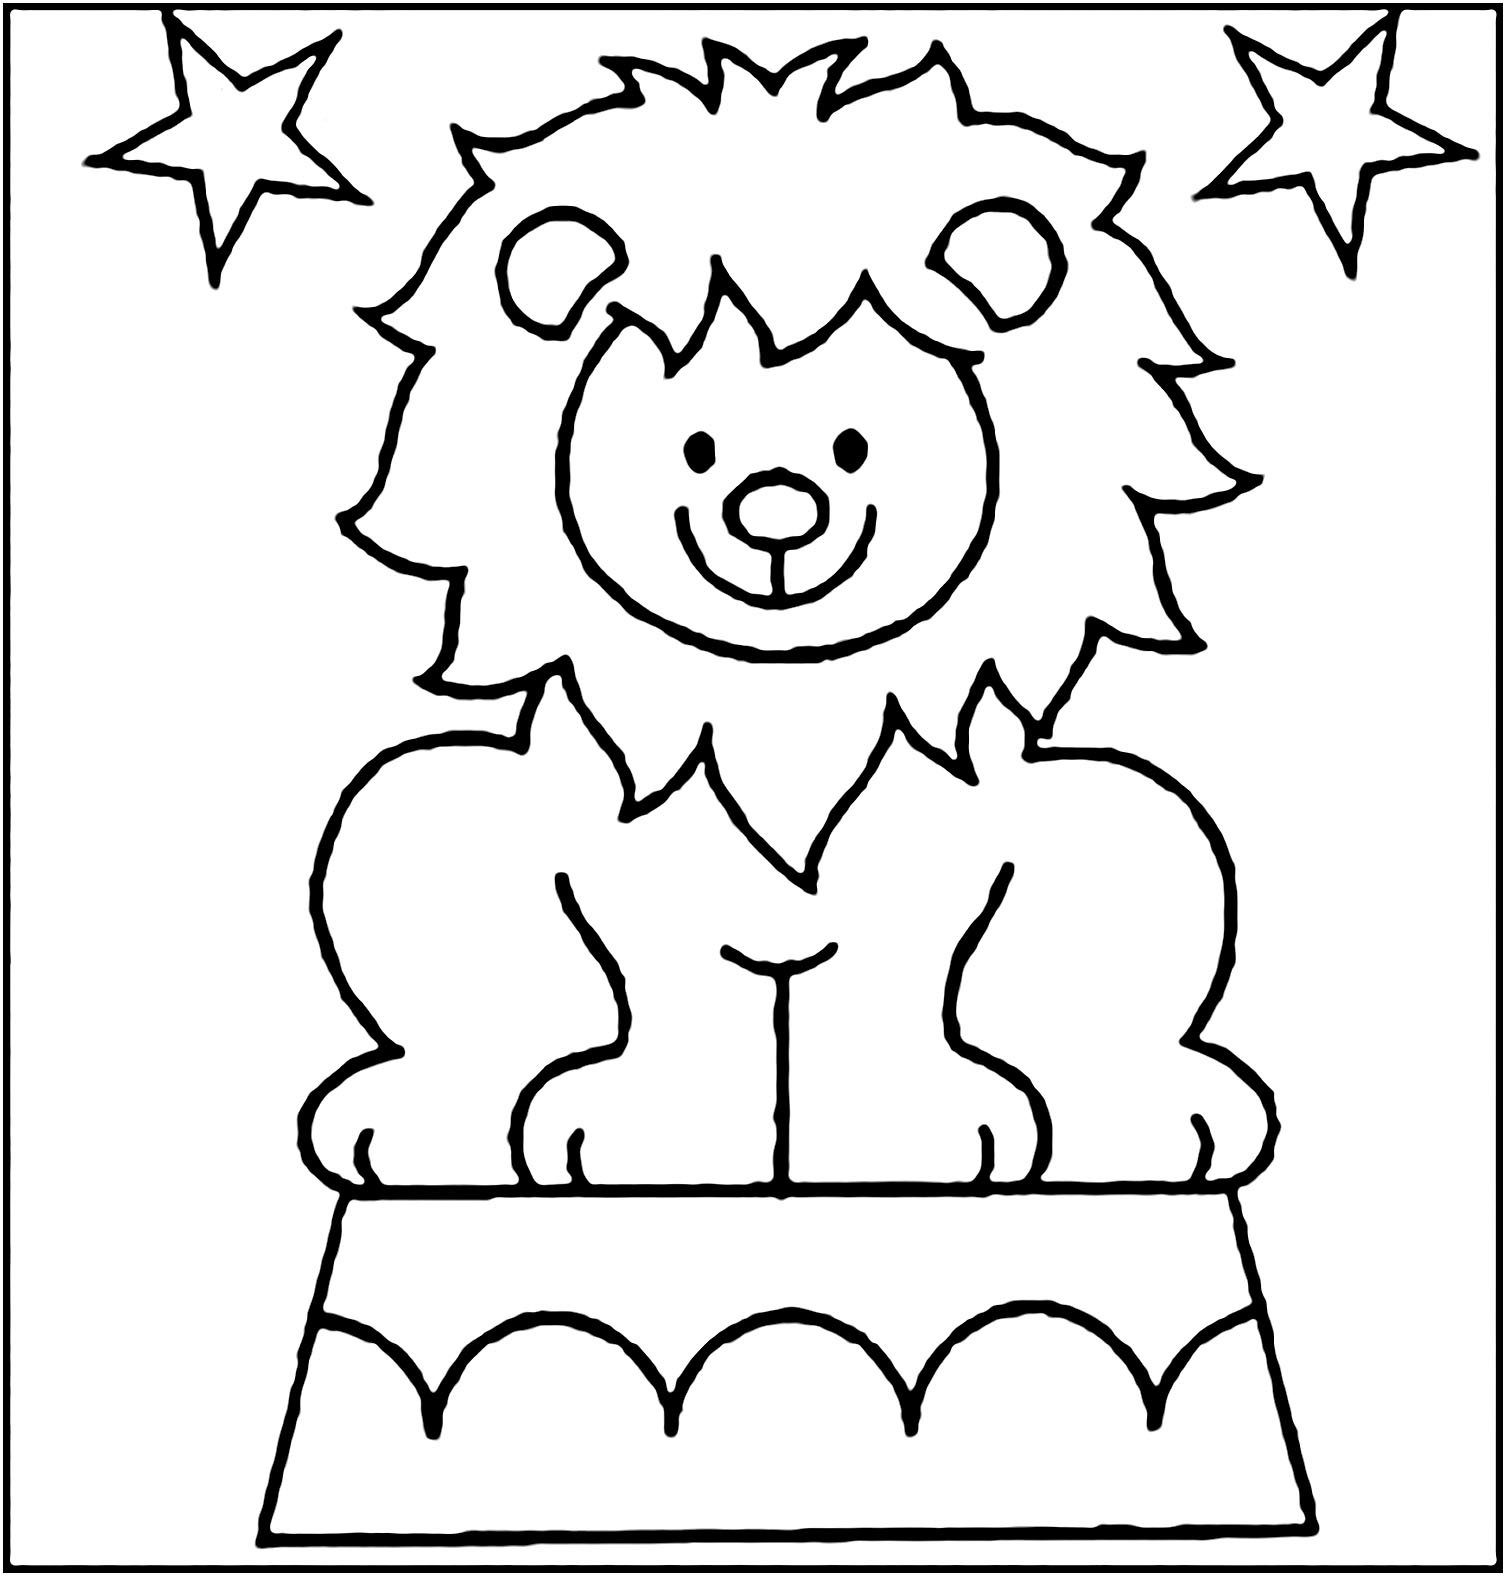 Circus to download - Circus Kids Coloring Pages